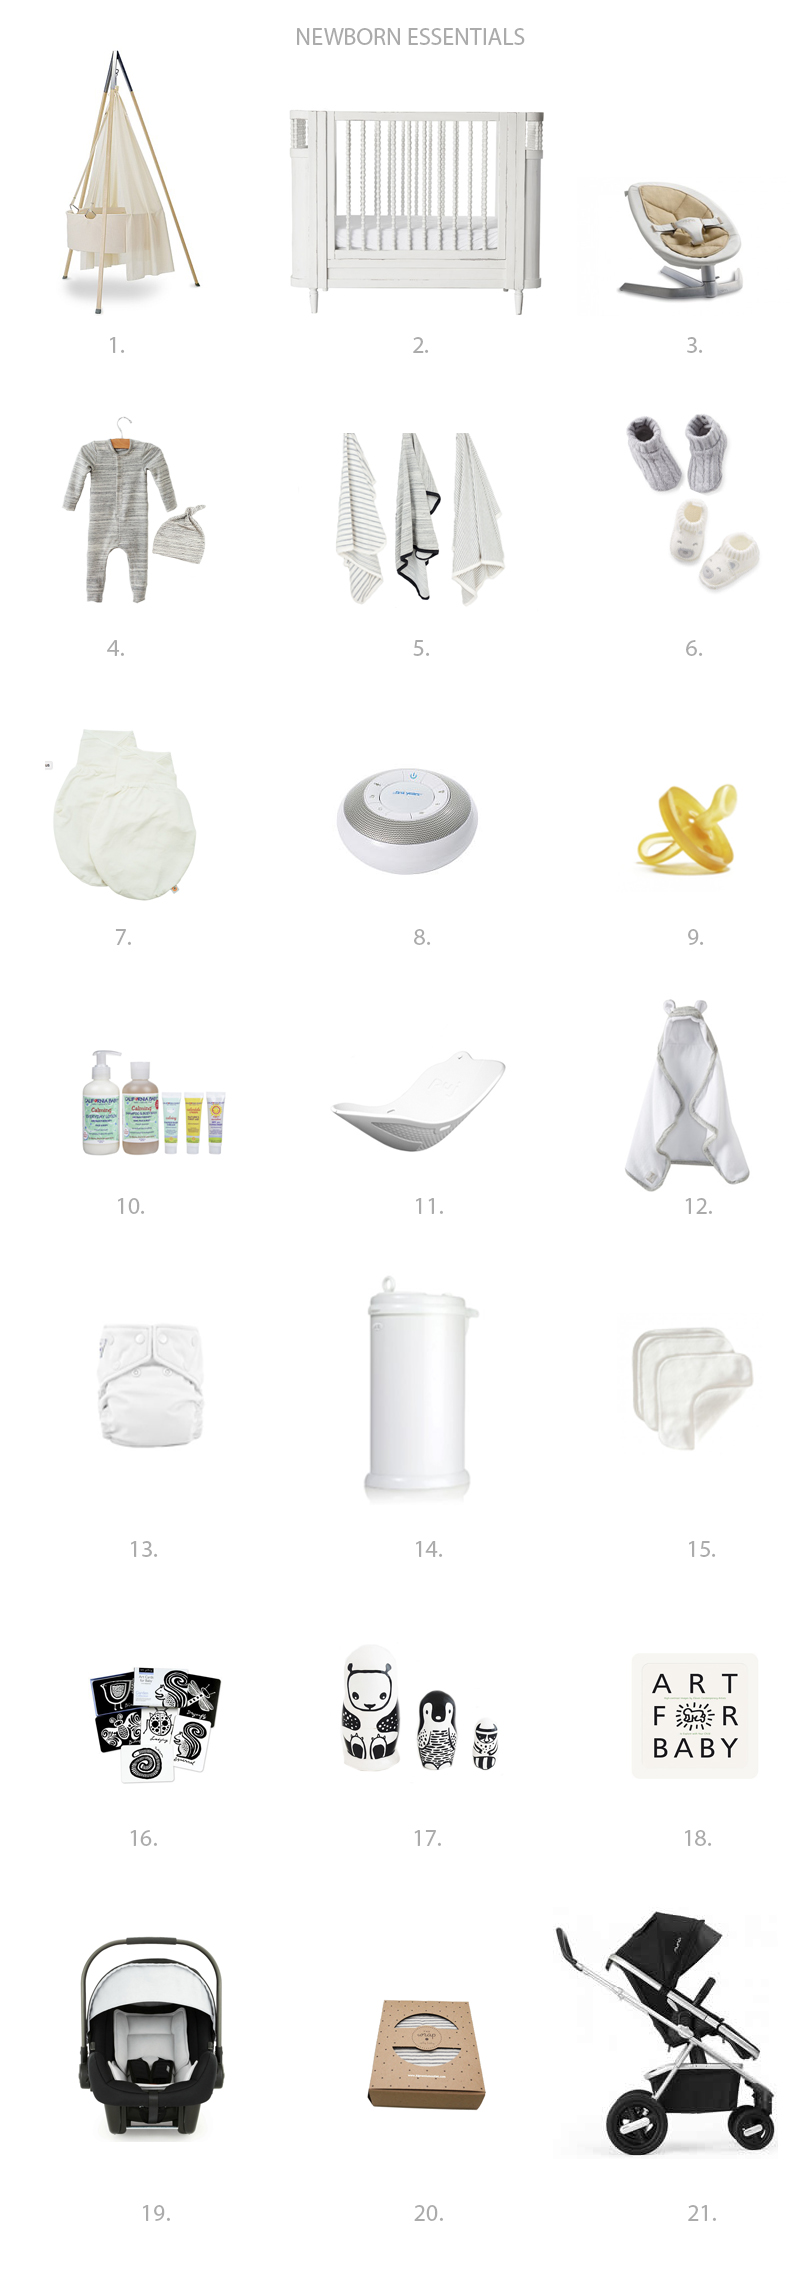 newborn_essentials